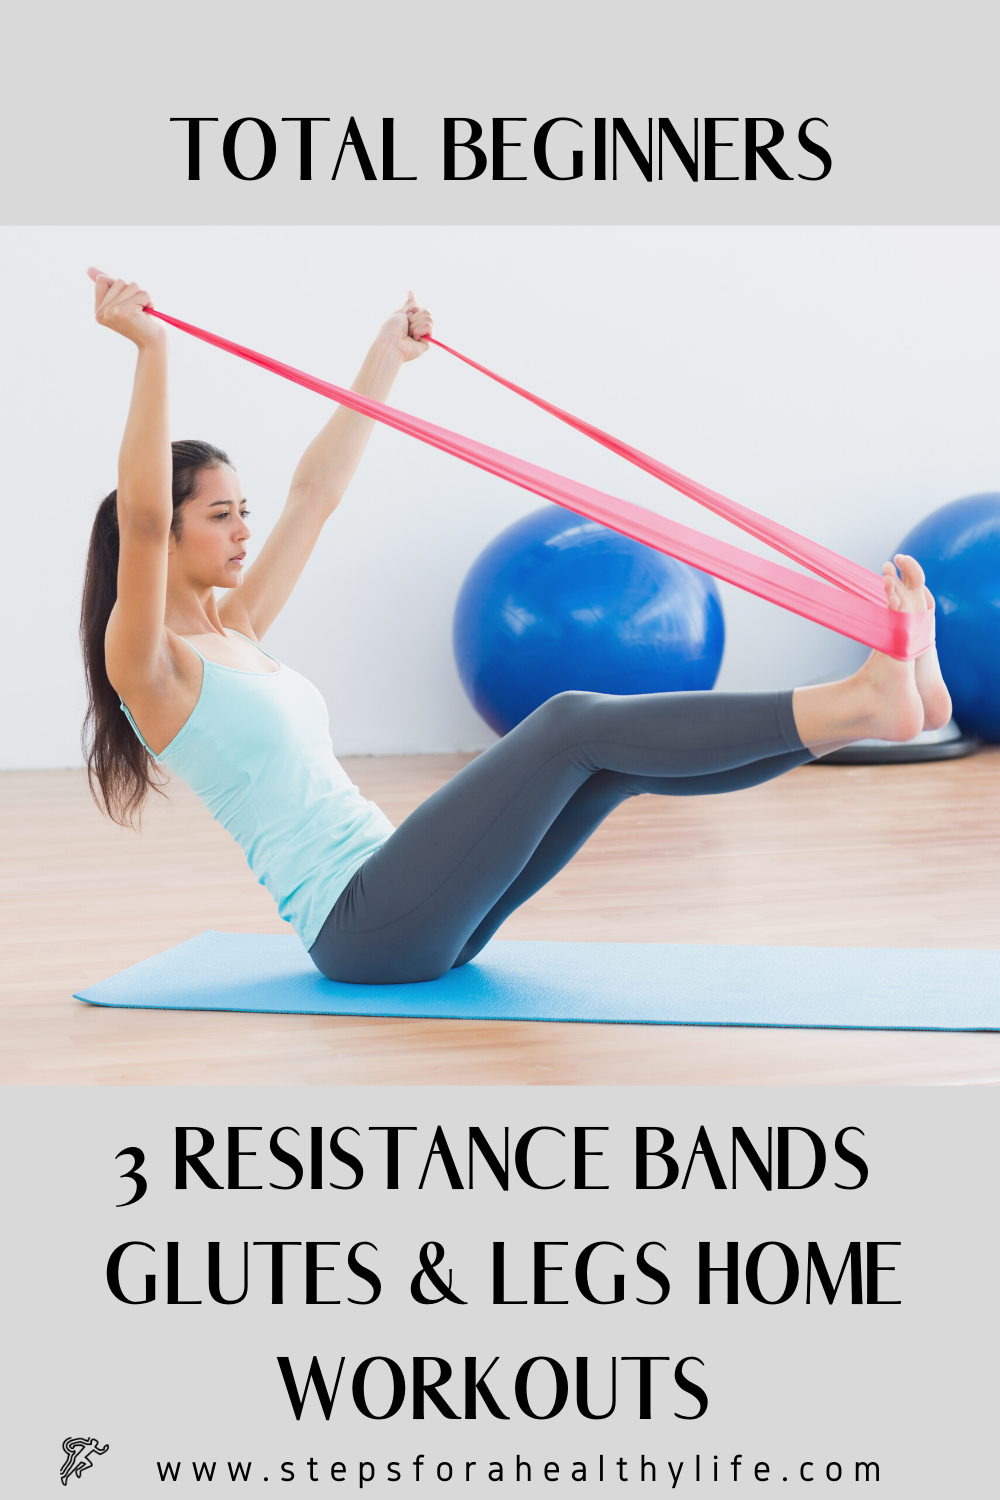 3 RESISTANCE BANDS FOR GLUTES  LEGS HOME WORKOUTS FOR BEGINNERS